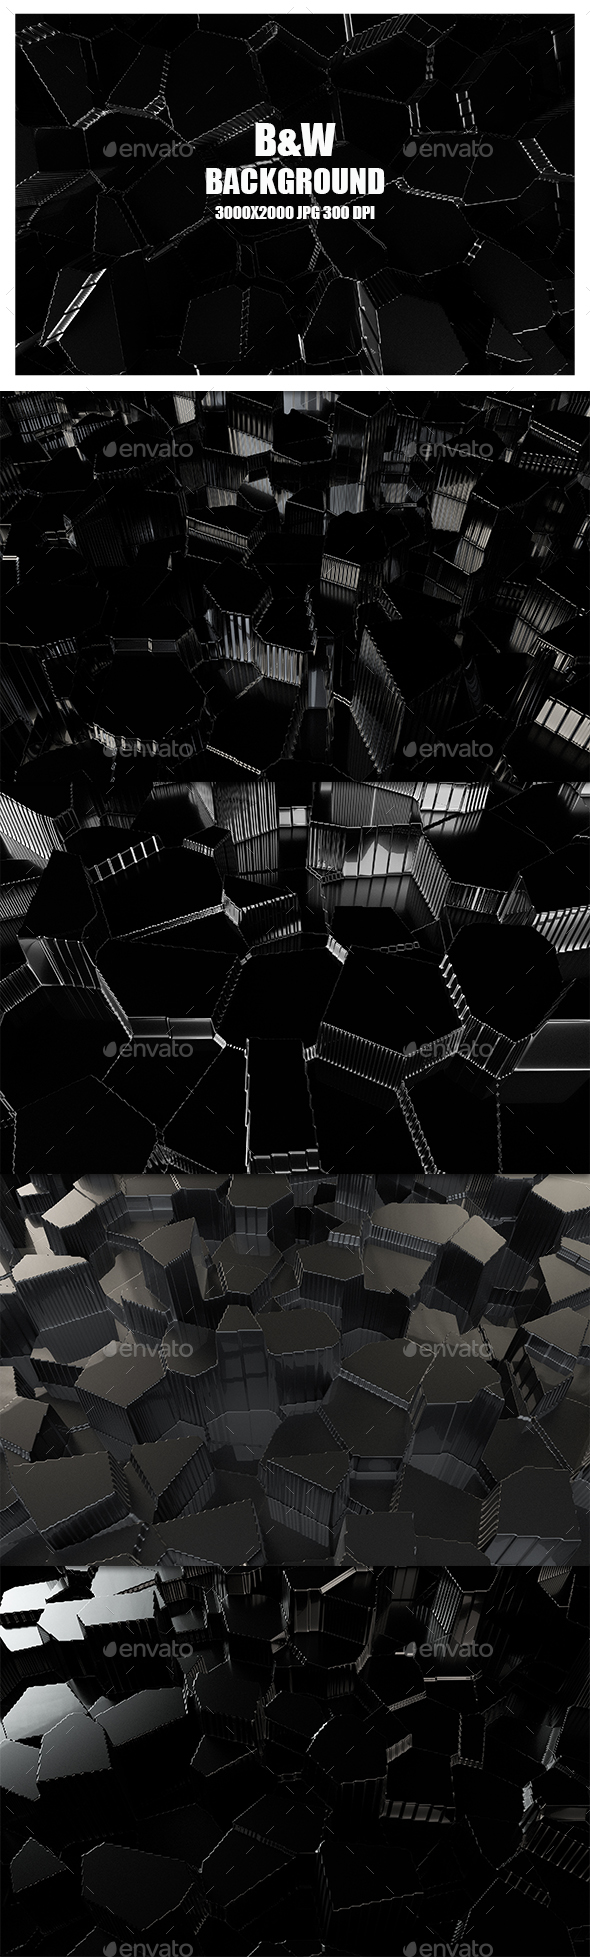 B&W Background - 3D Backgrounds